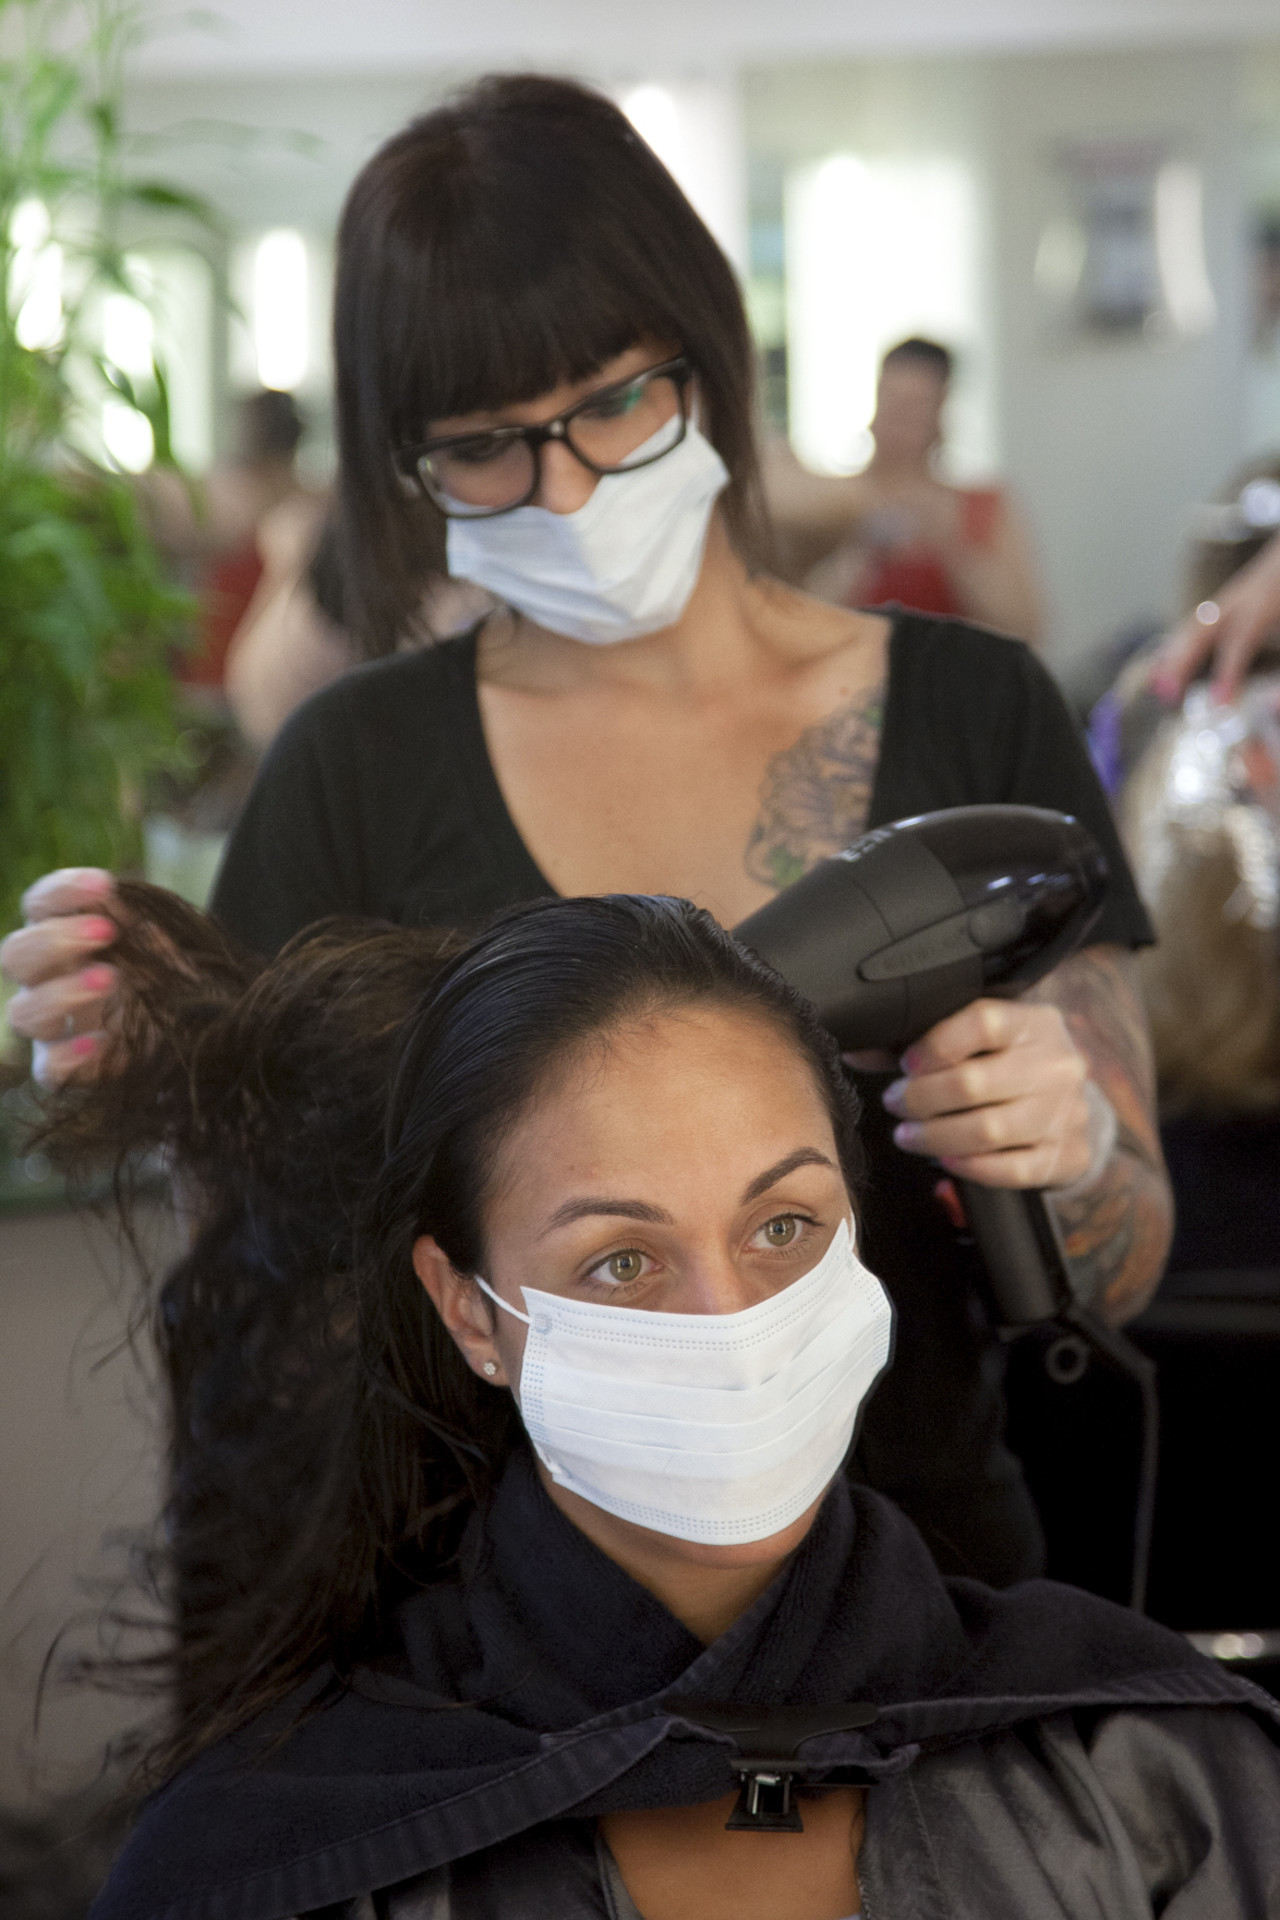 Keratin has to be sealed in with heat. To avoid inhaling the potentially dangerous fumes, both the hairdresser and client wear a face mask.